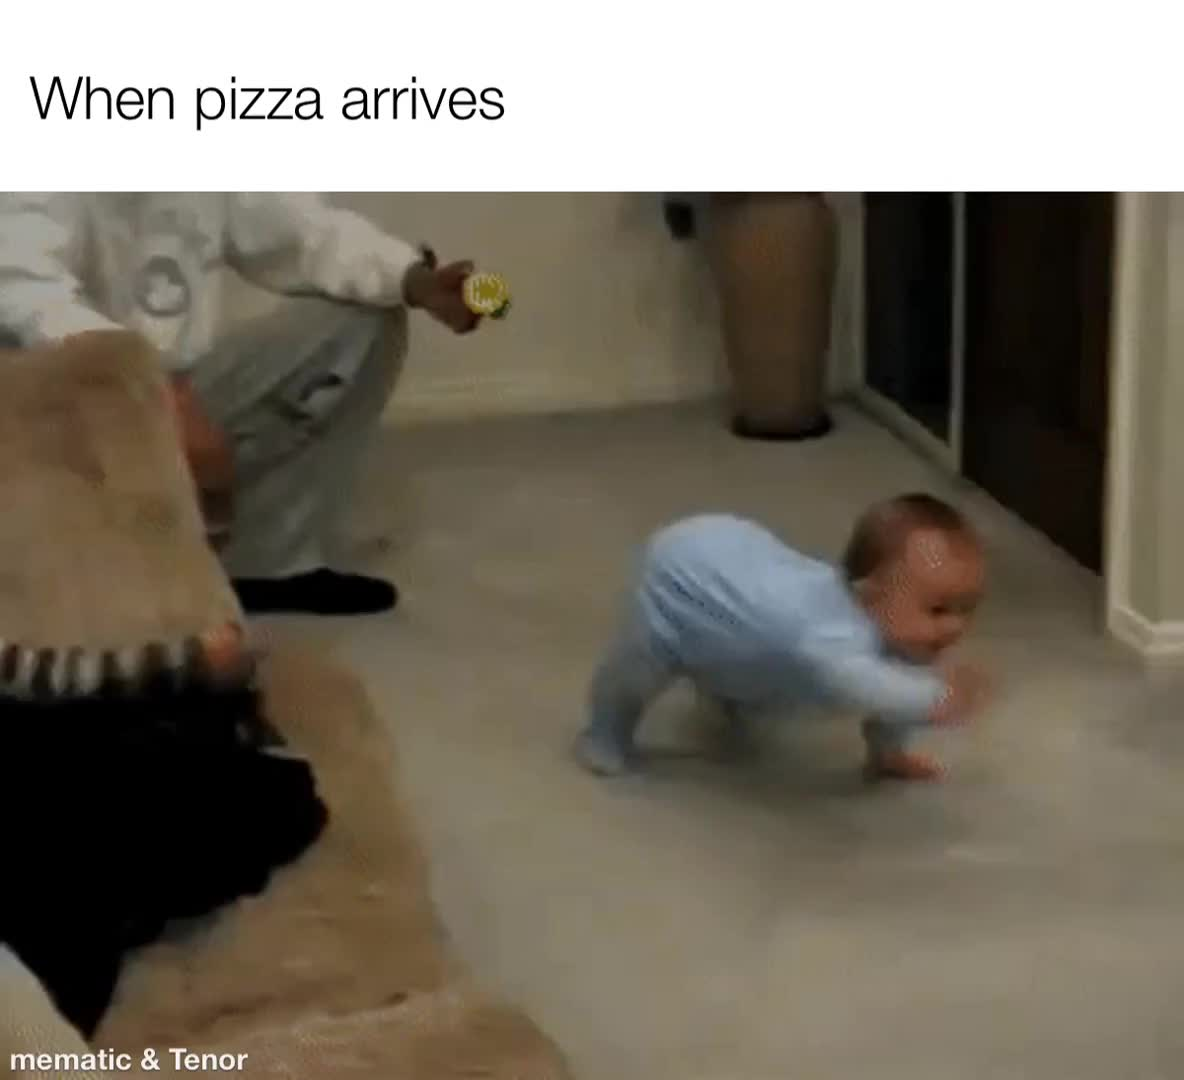 When Pizza arrives